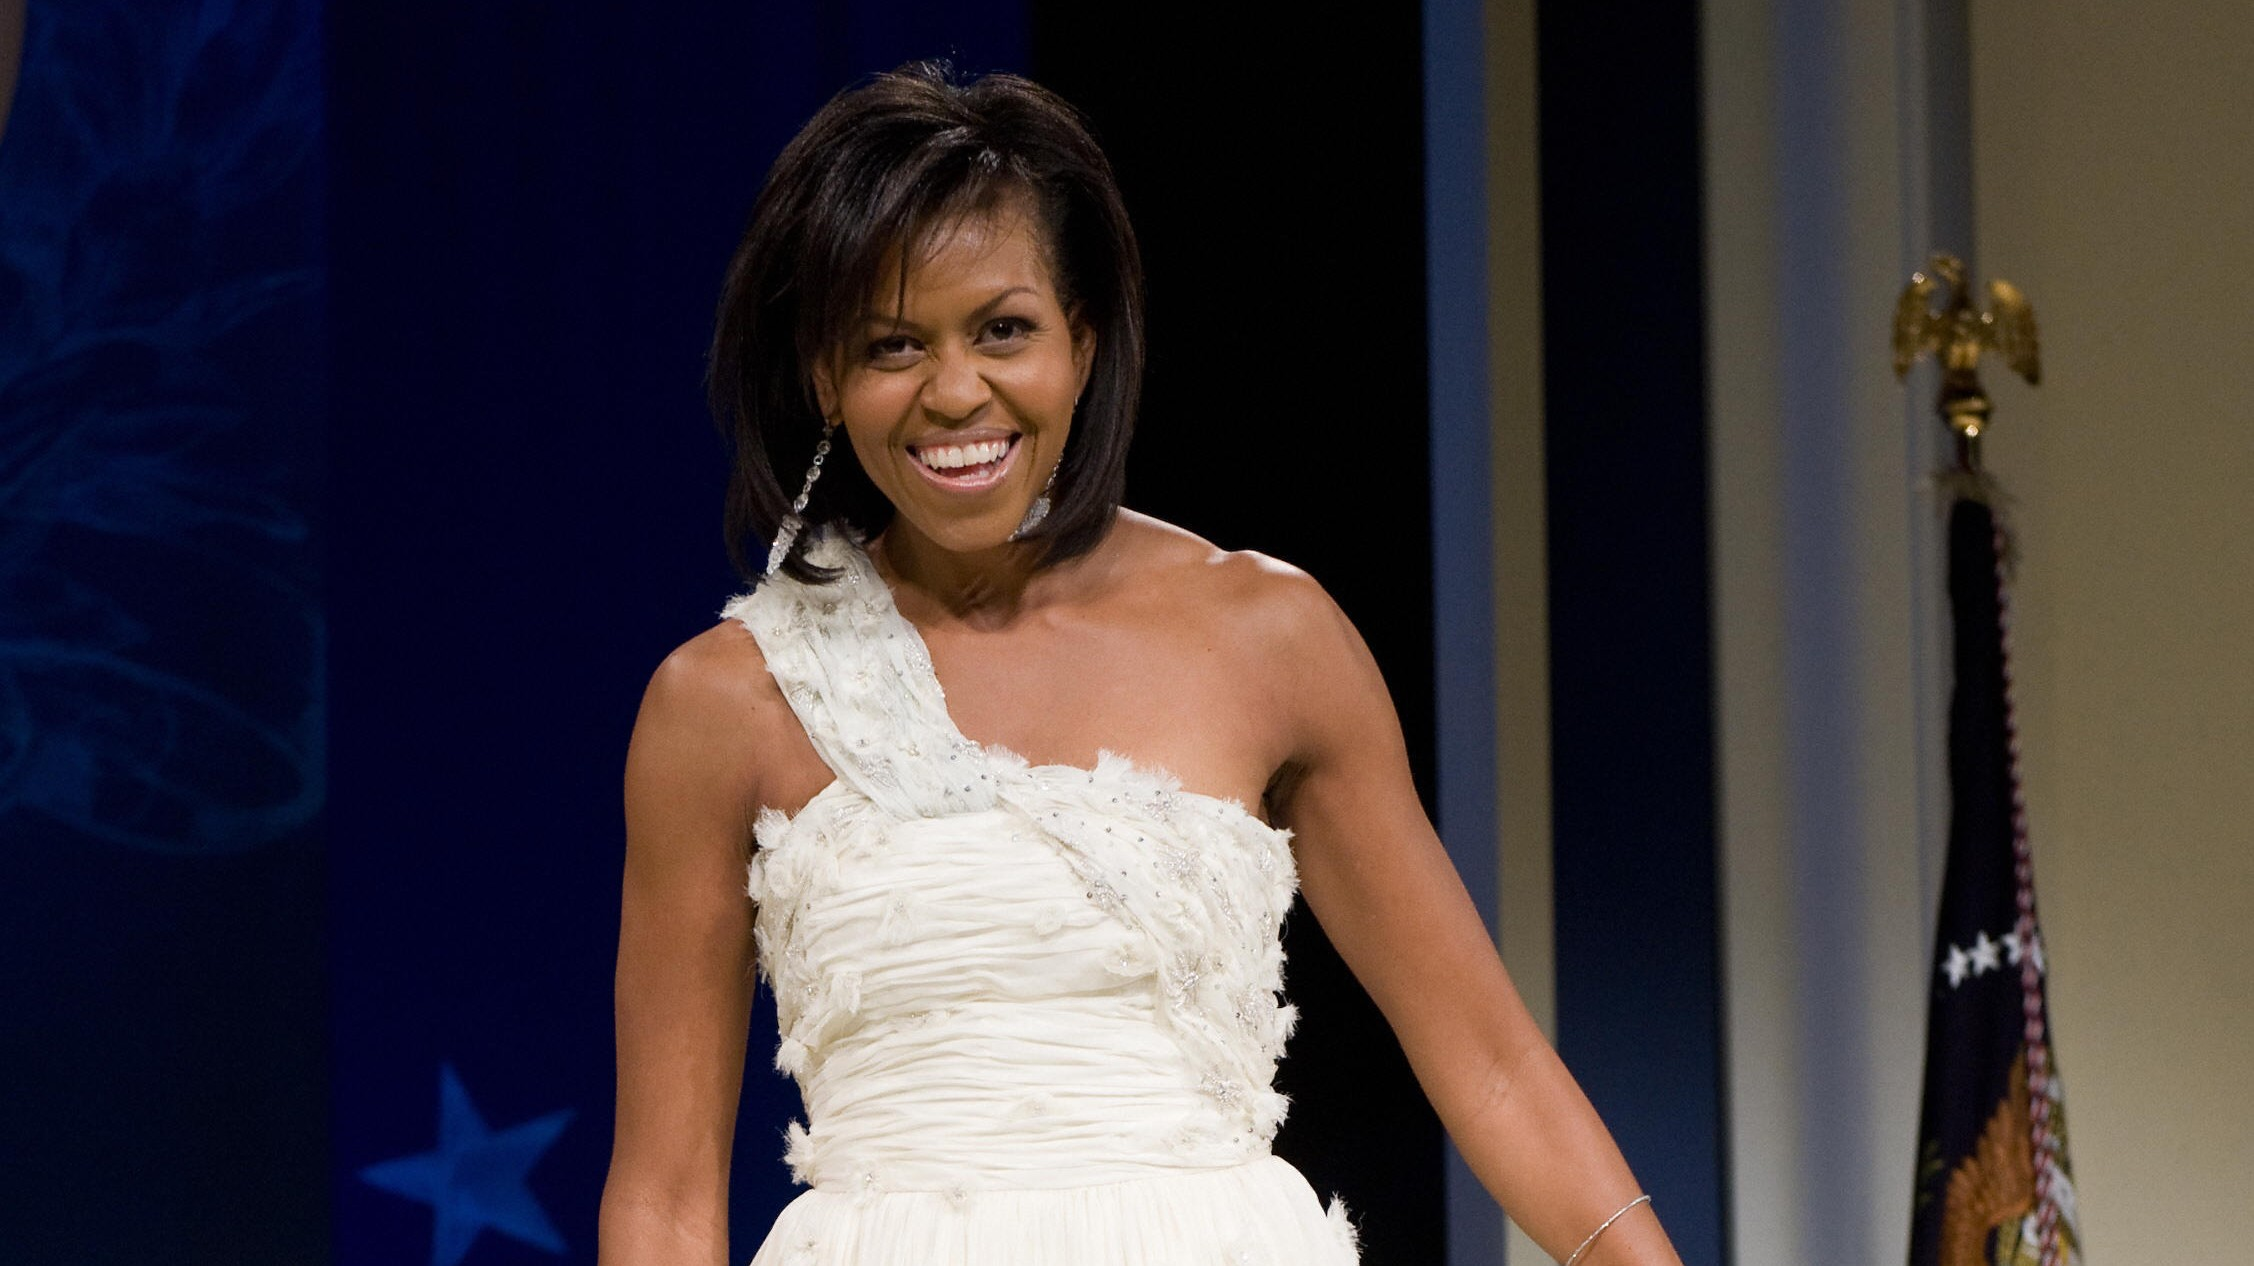 Michelle Obama Paid for All Her Own Clothes and Accessories as First Lady